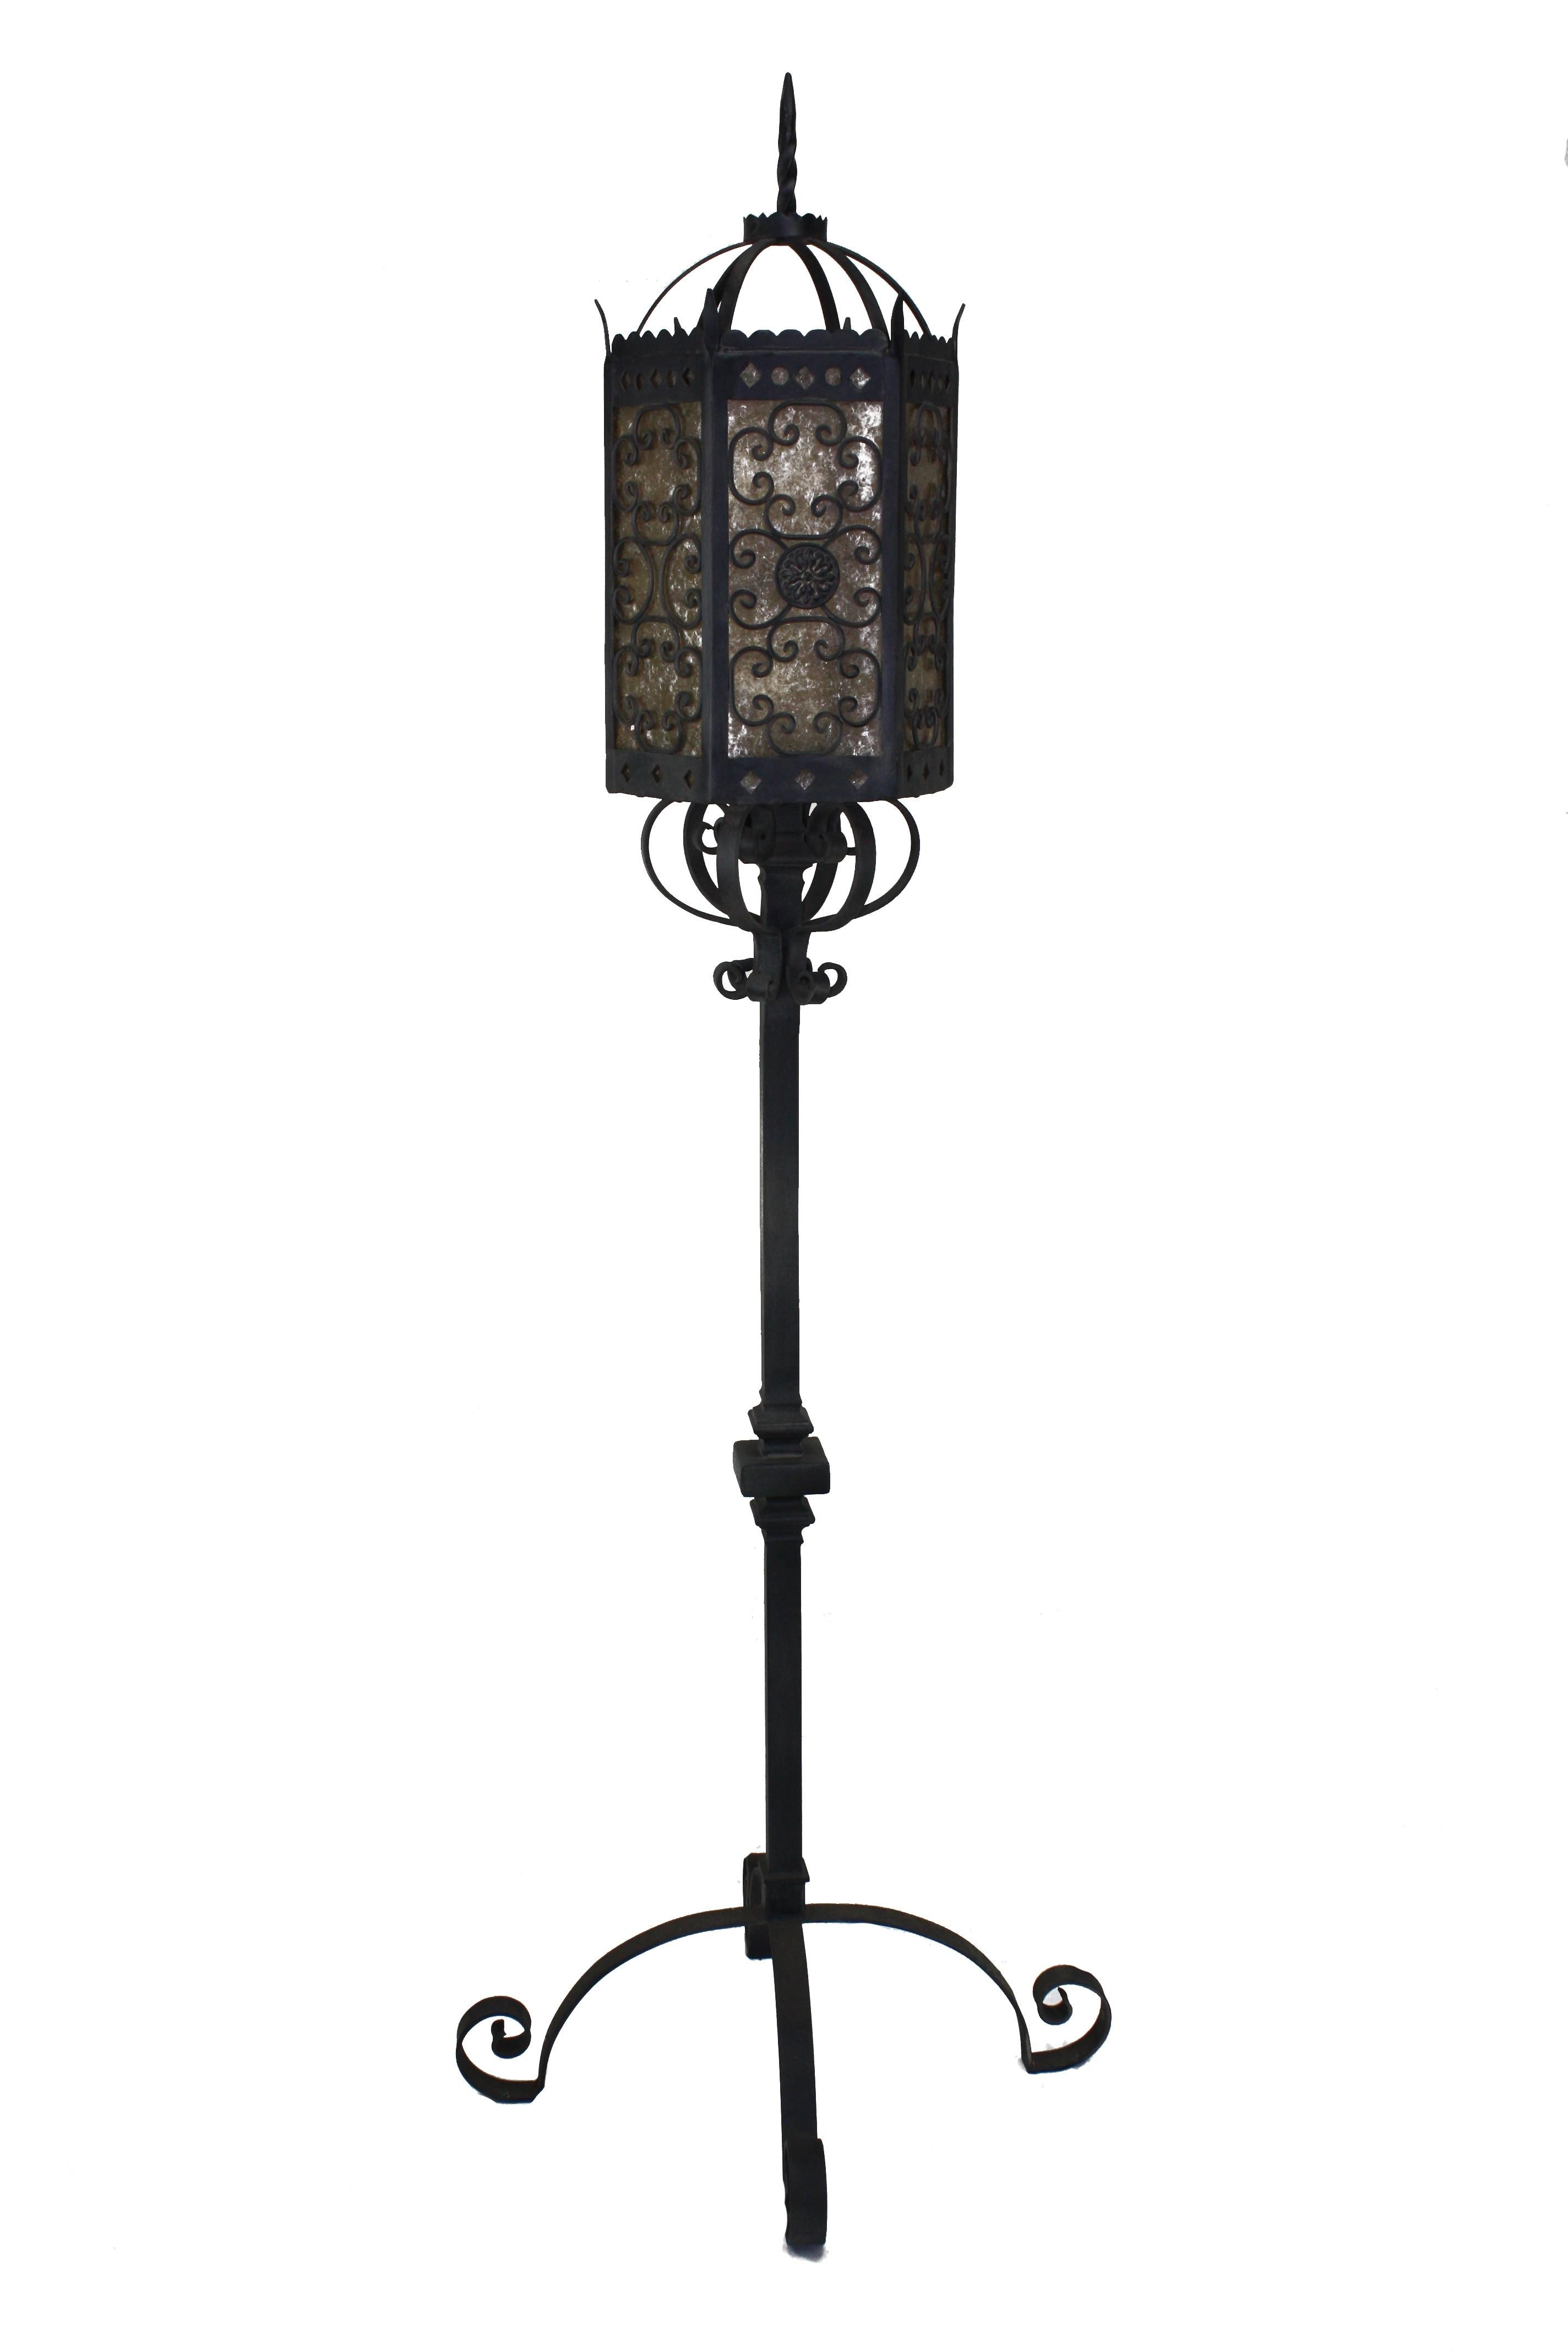 Custom hand forged iron and mica floor candelabra with 3 lights by www.haciendalights.com